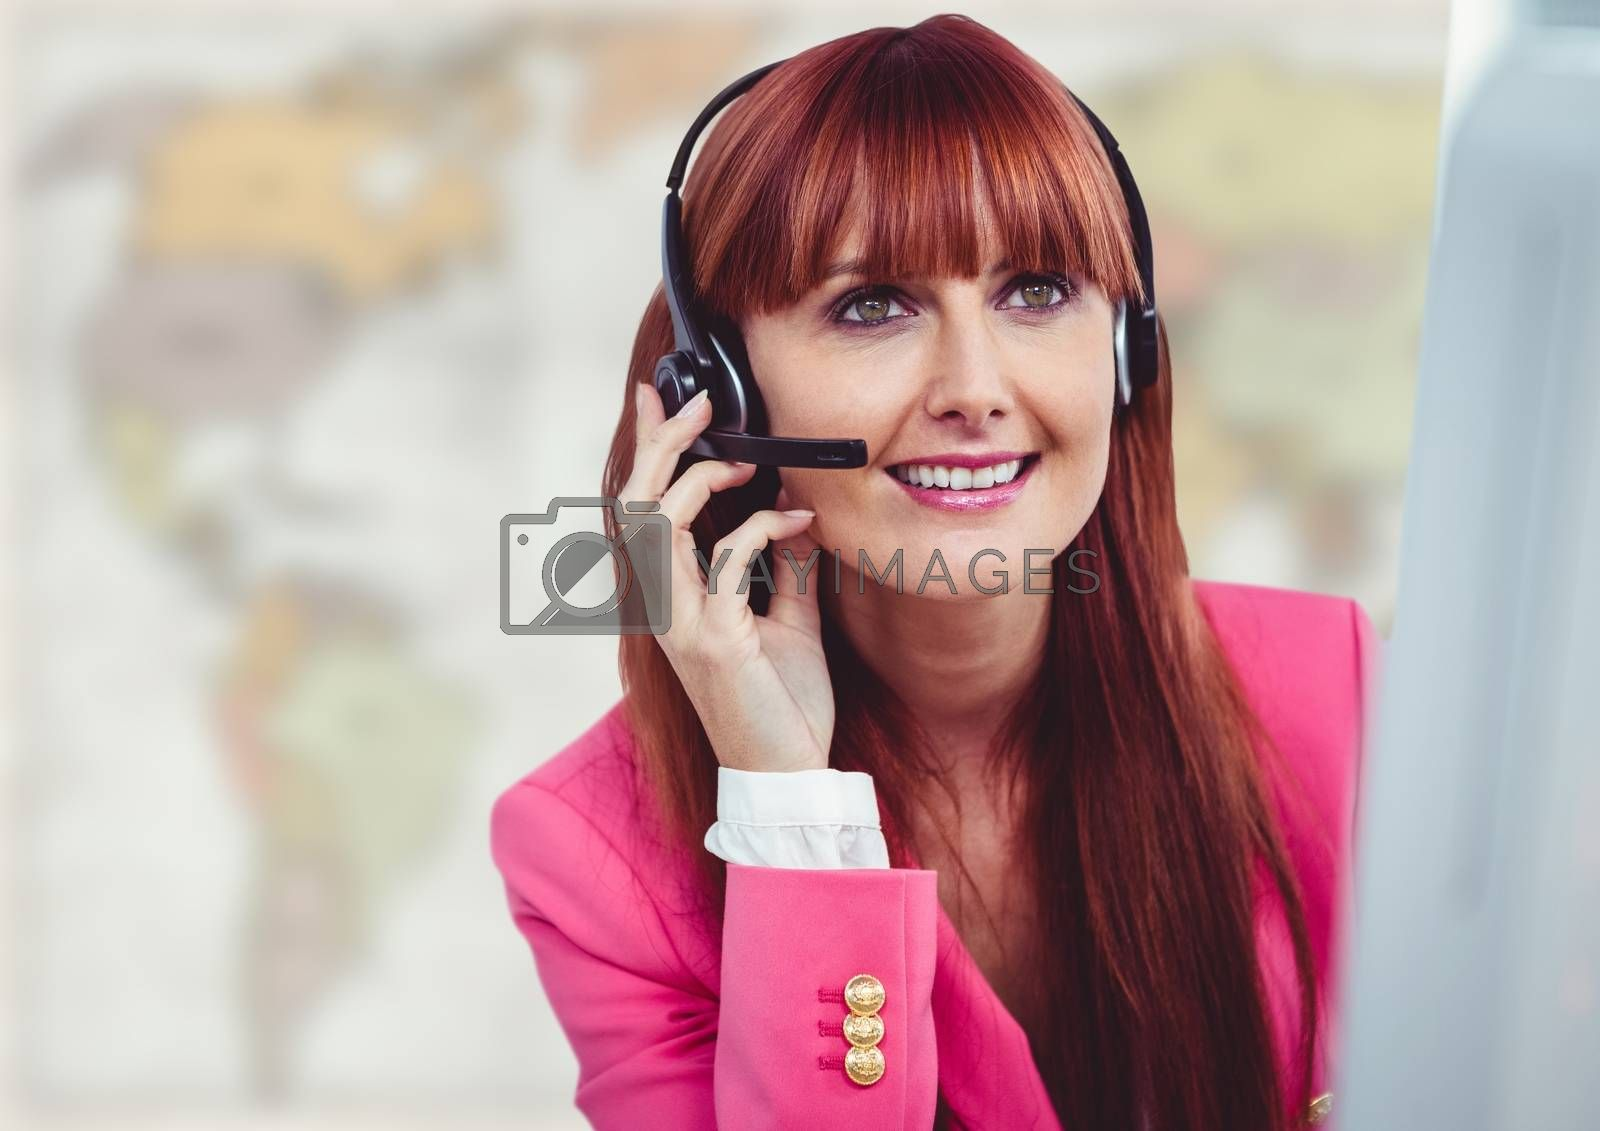 Digital composite of Travel agent at computer against blurry map